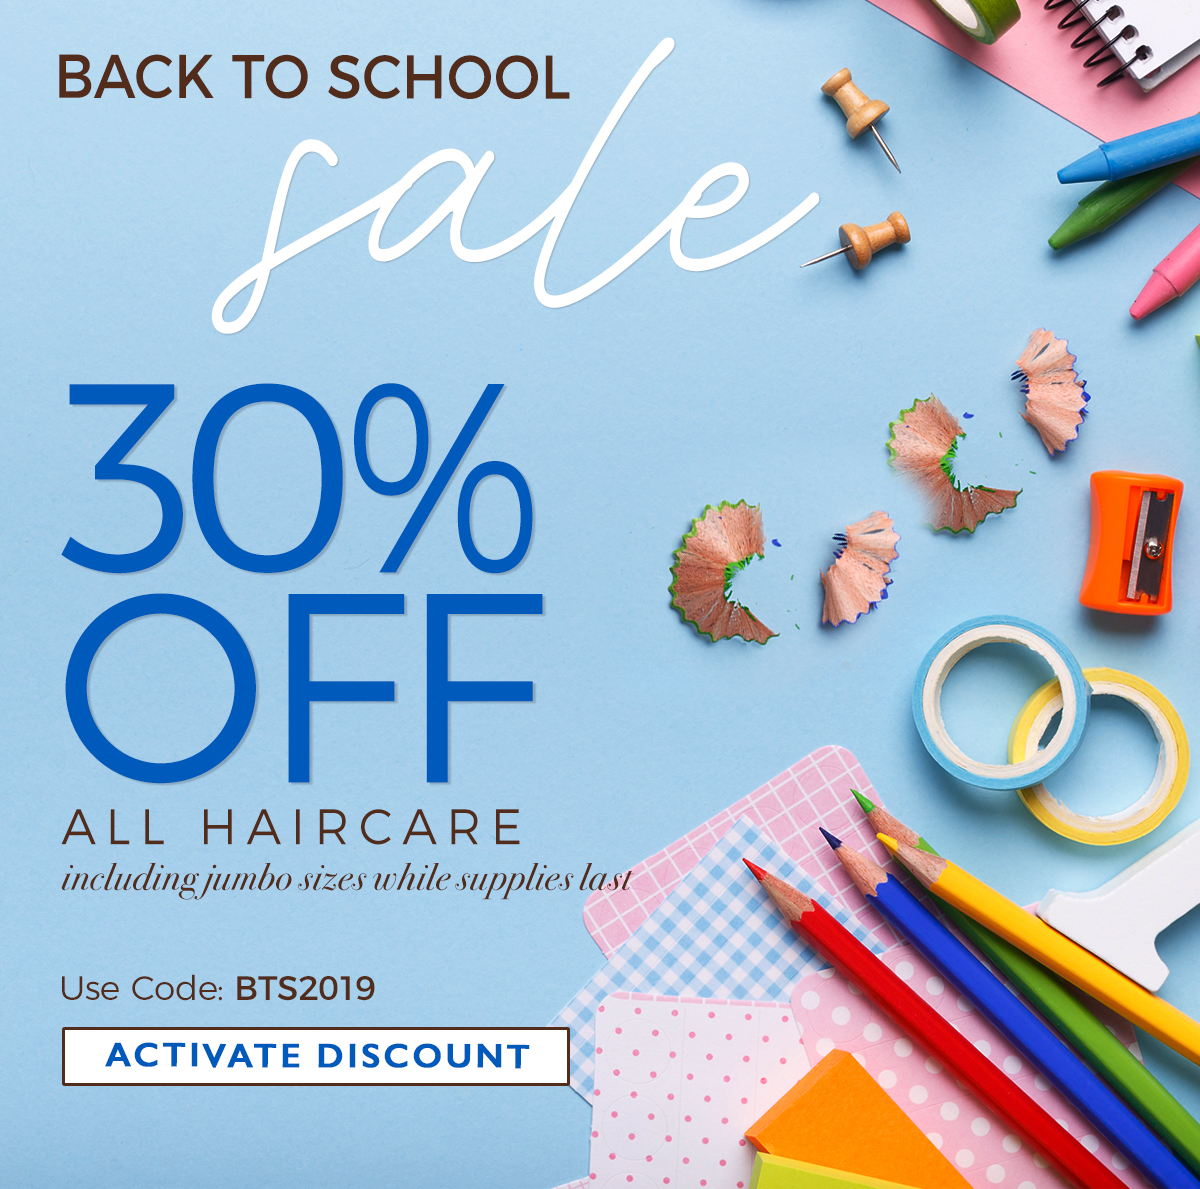 BACK TO SCHOOL sale 30% OFF | ALL HAIRCARE including jumbo sizes while supplies last | Use Code: BTS2019 | ACTIVATE DISCOUNT